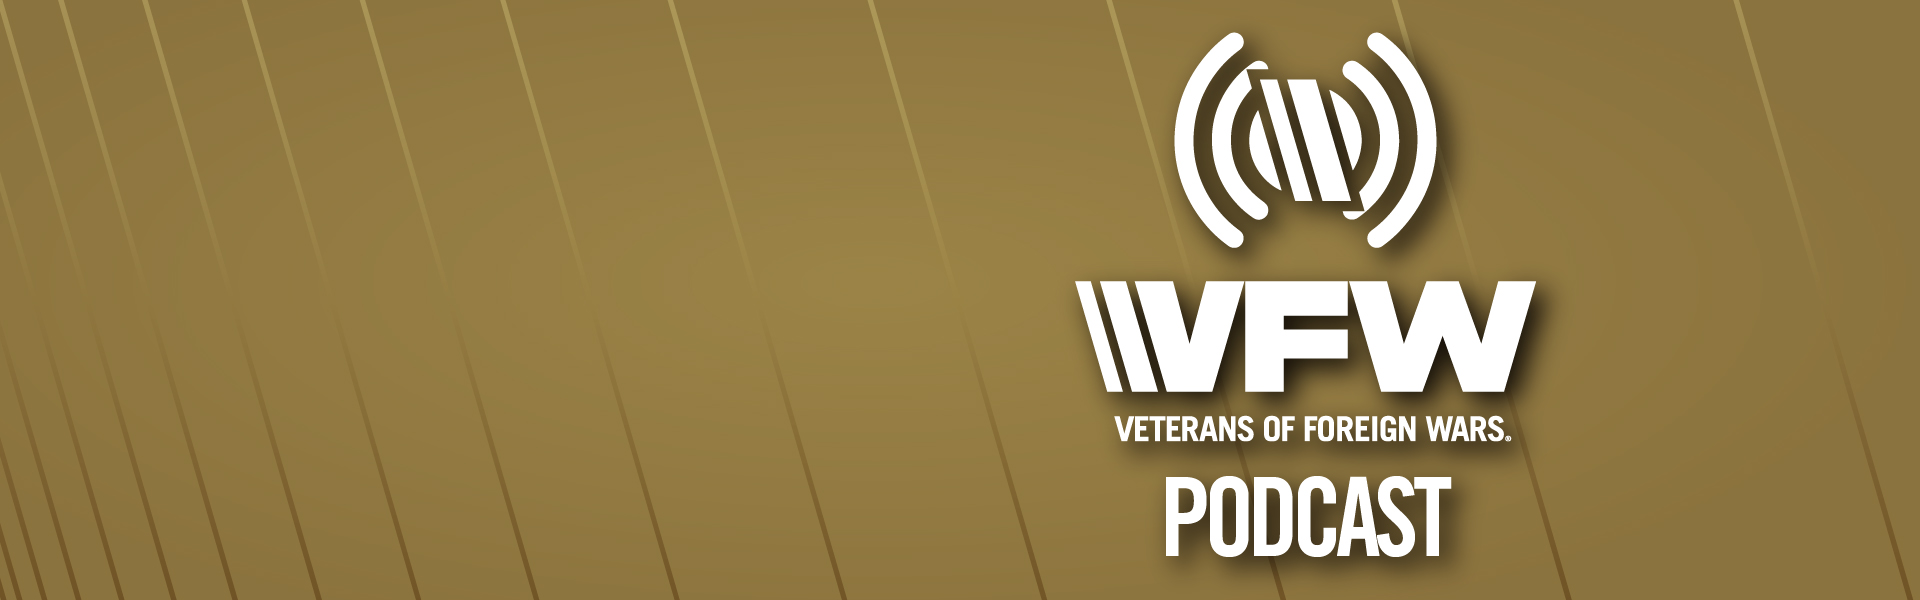 The VFW Podcast is coming soon